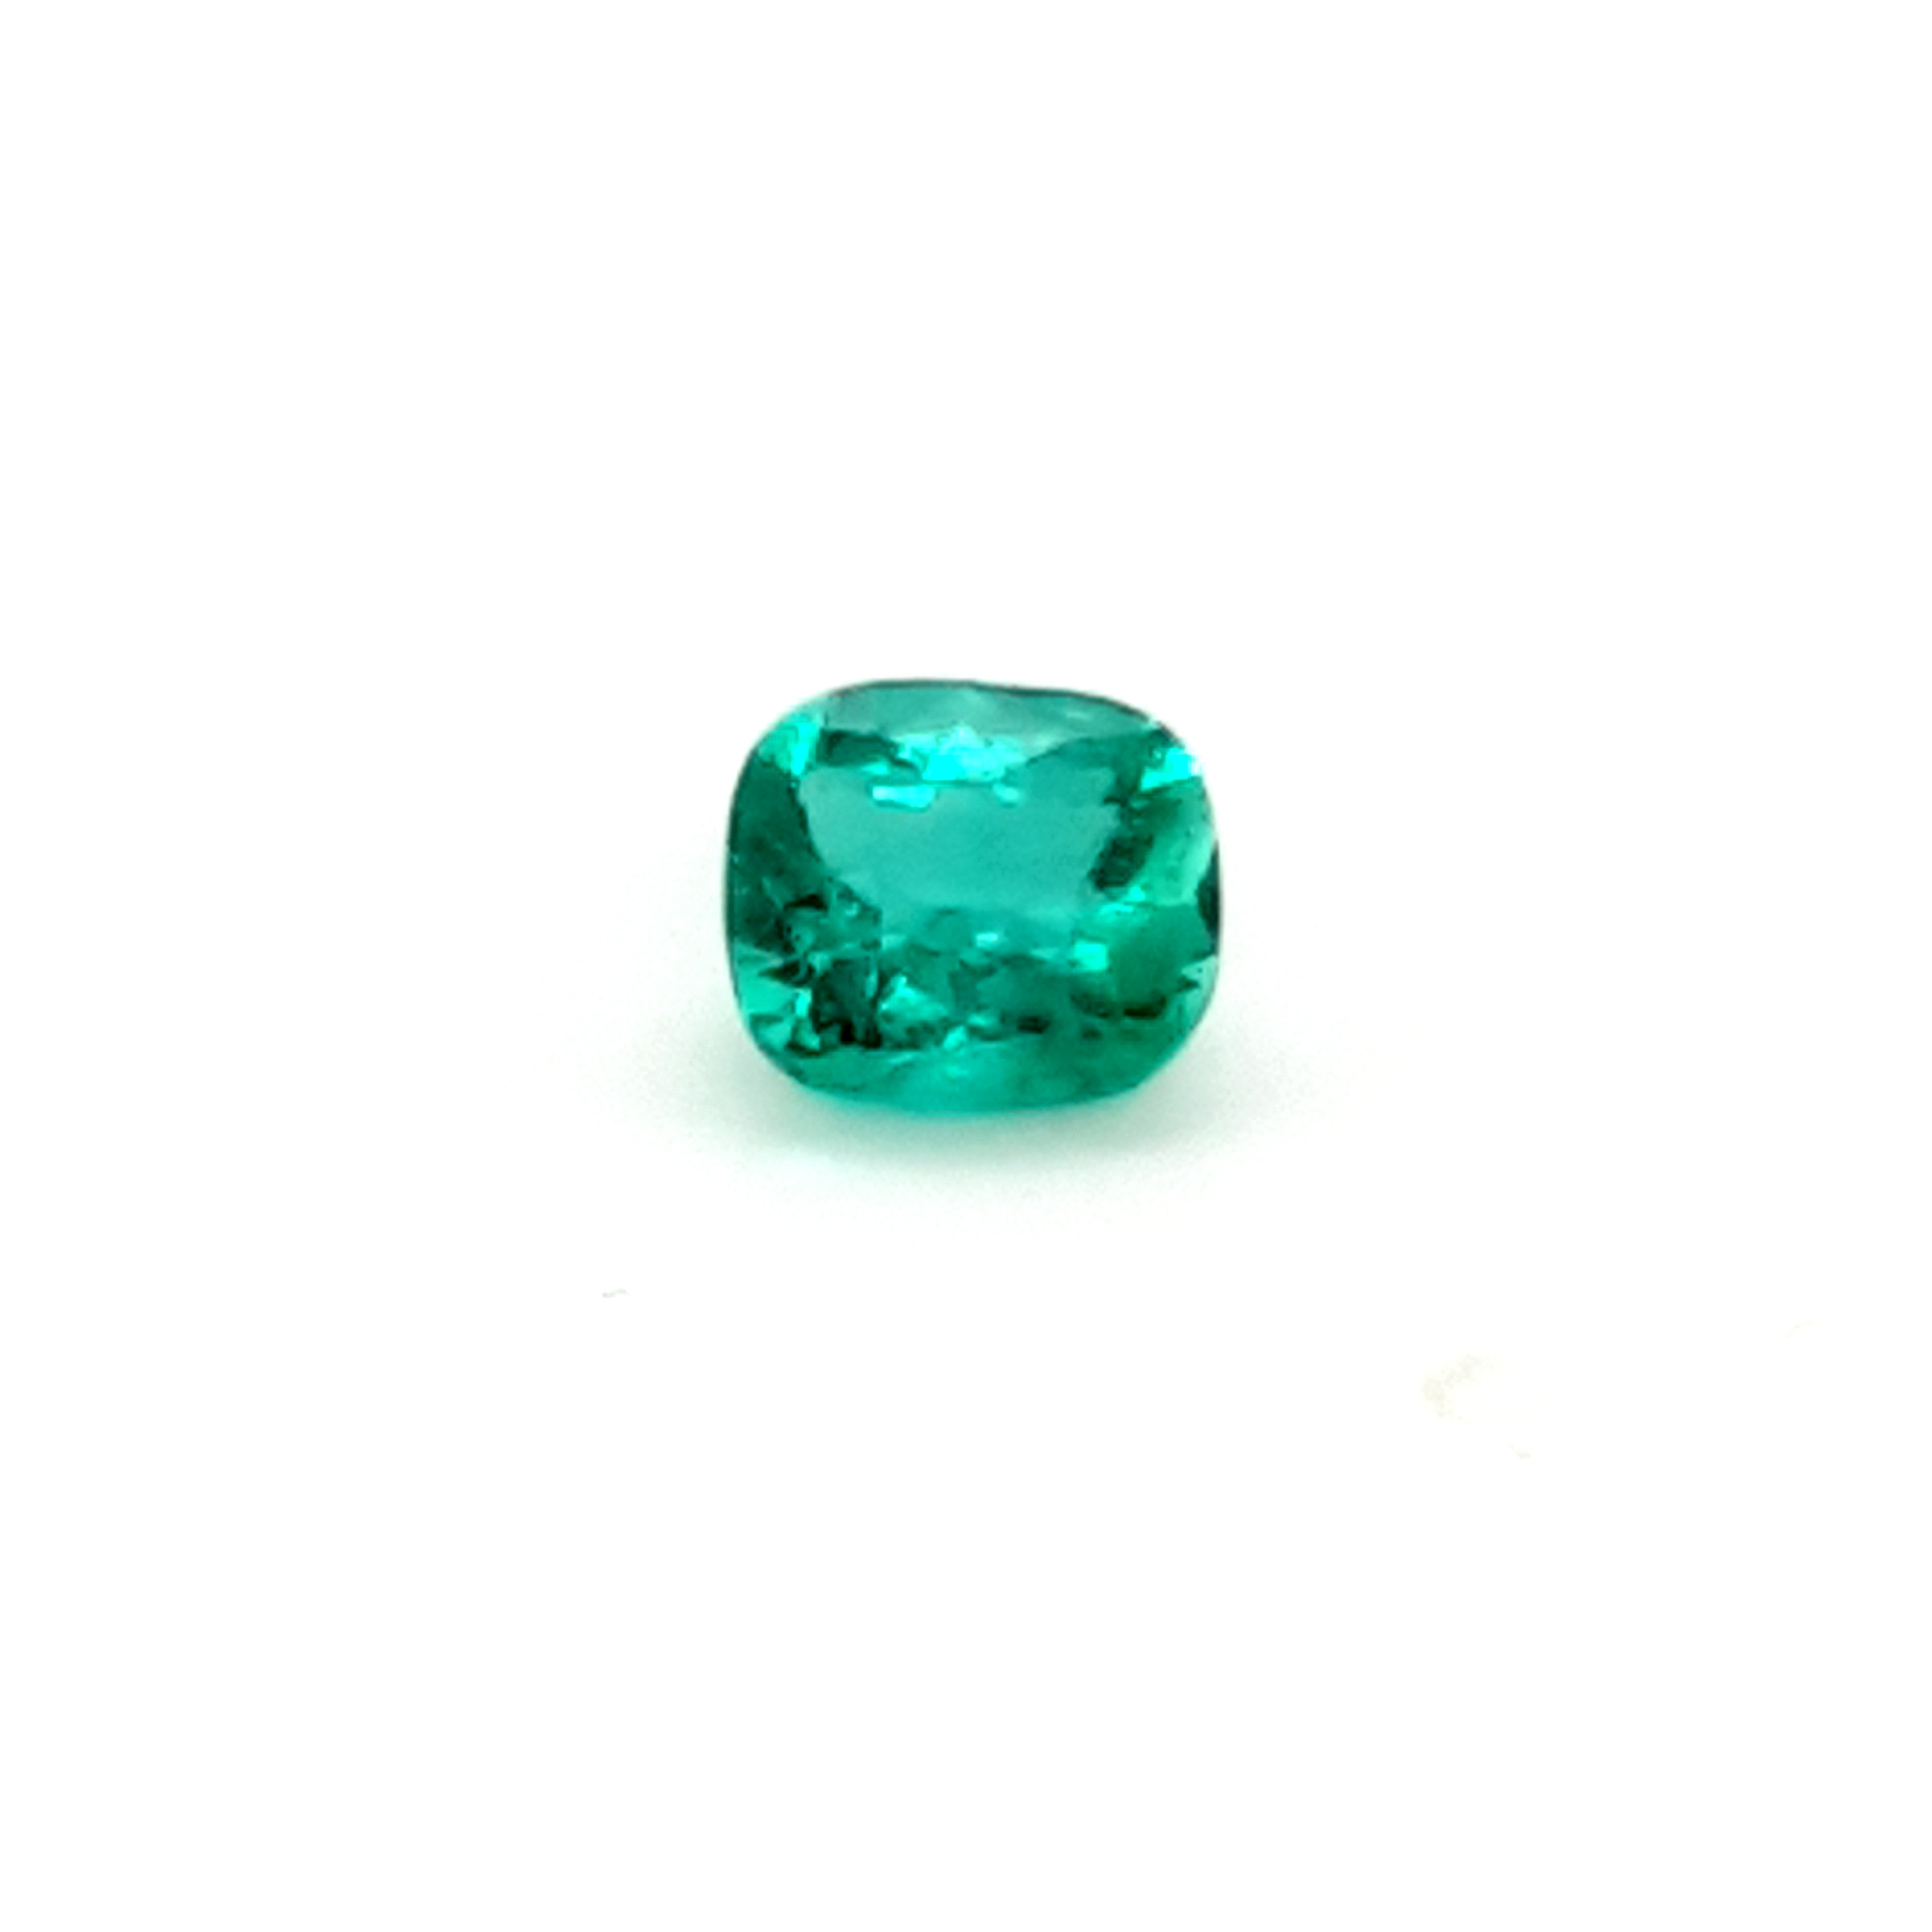 1,42ct. Emerald from Colombia EMI20C13 ClaudiaHamann__2021-03-28-23-53-39